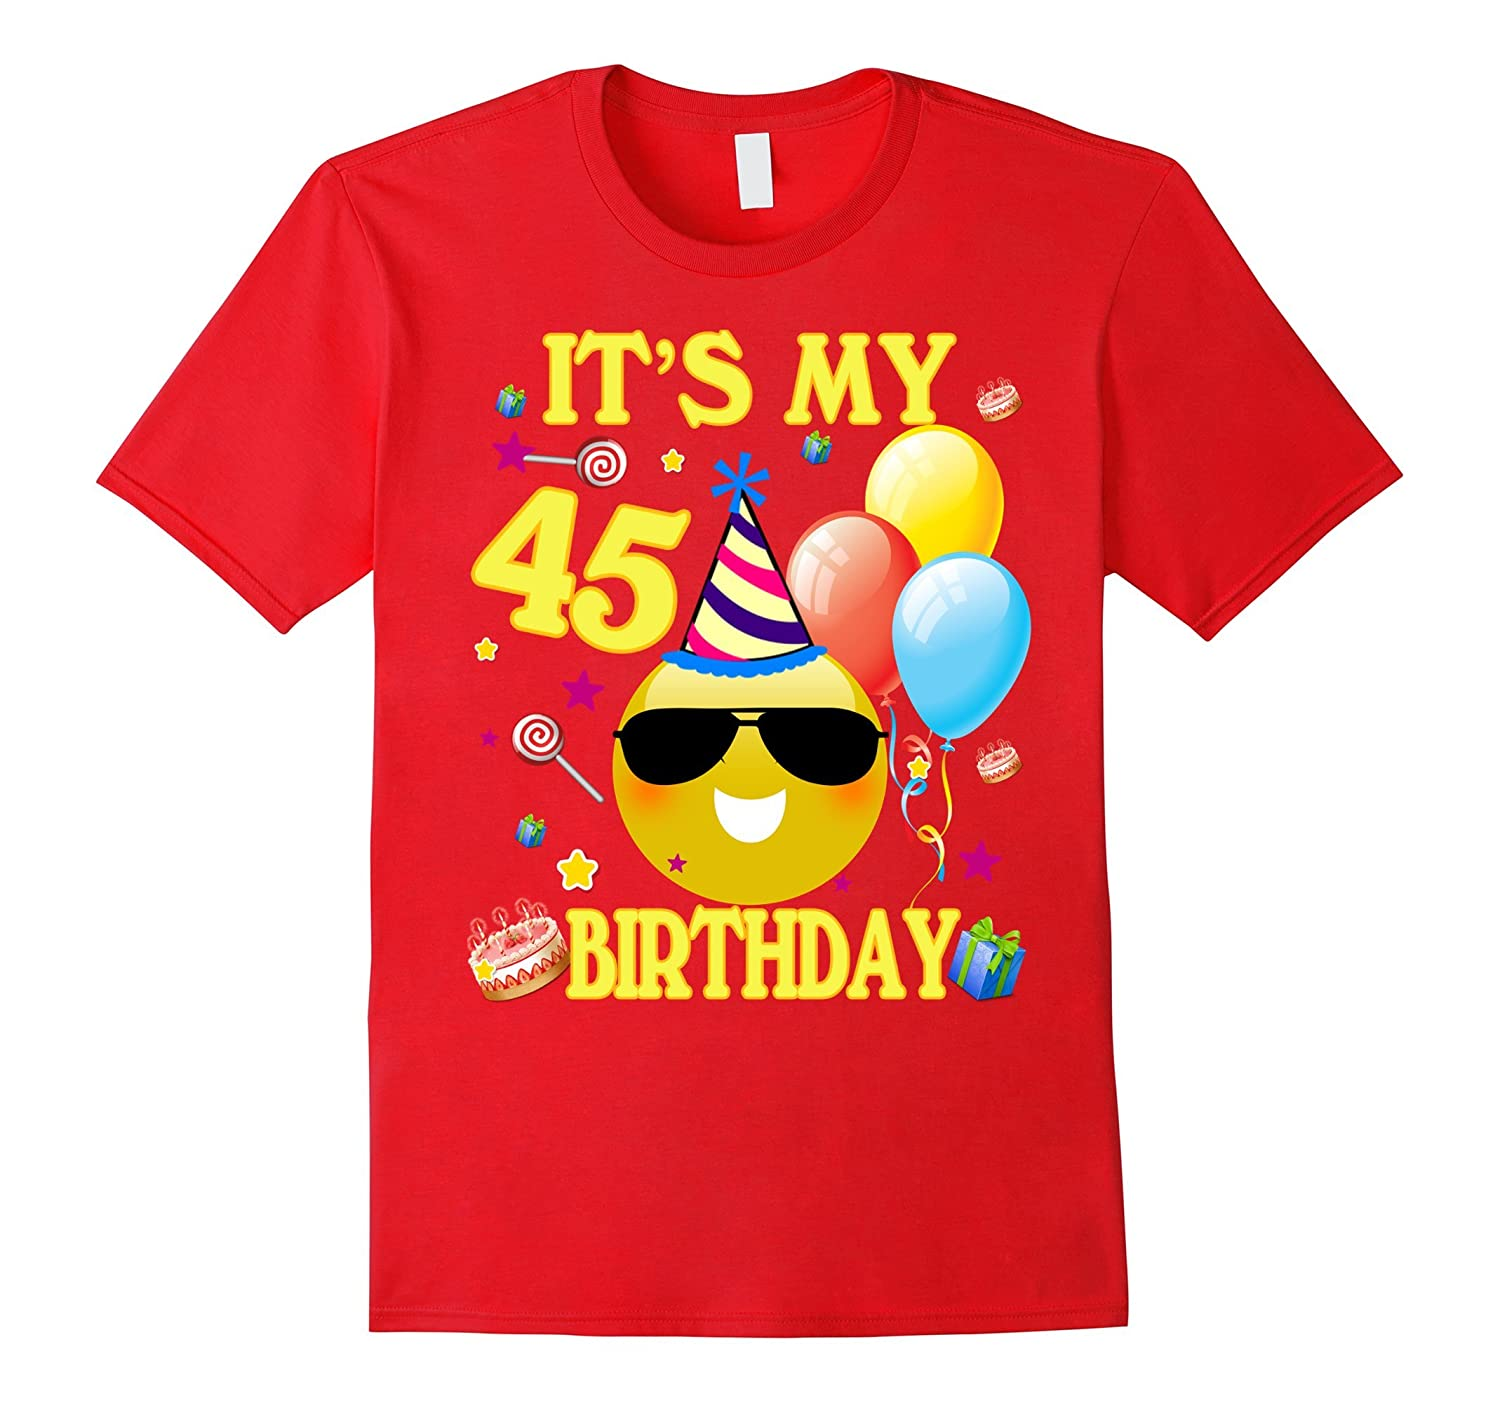 Its My 45th Birthday Shirt 45 Years Old Gift ANZ Anztshirt